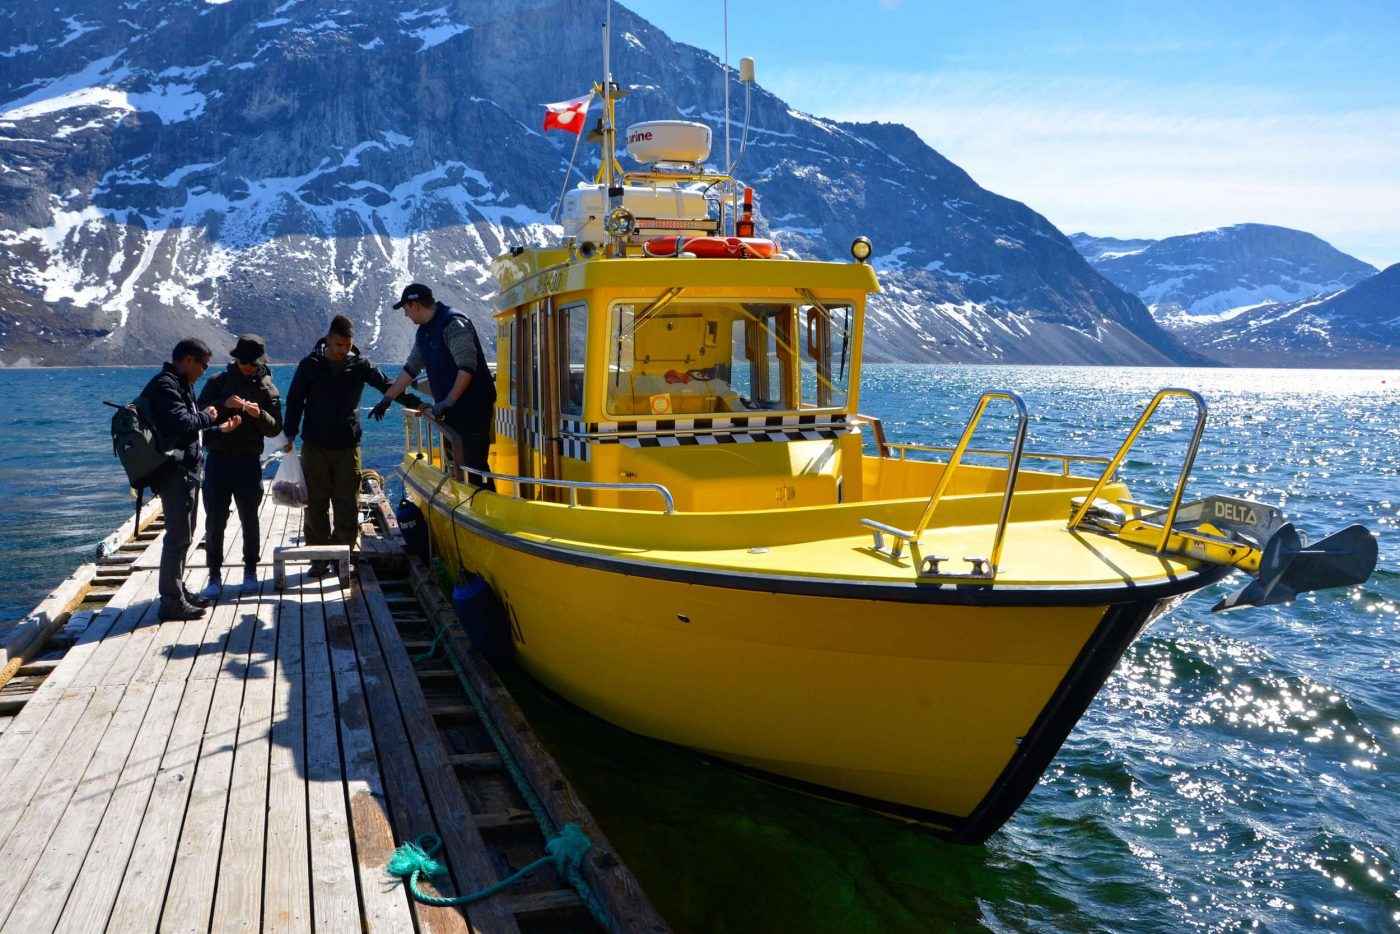 Catch of the day at the dock. Photo by Nuuk Water Taxi - Visit Greenland